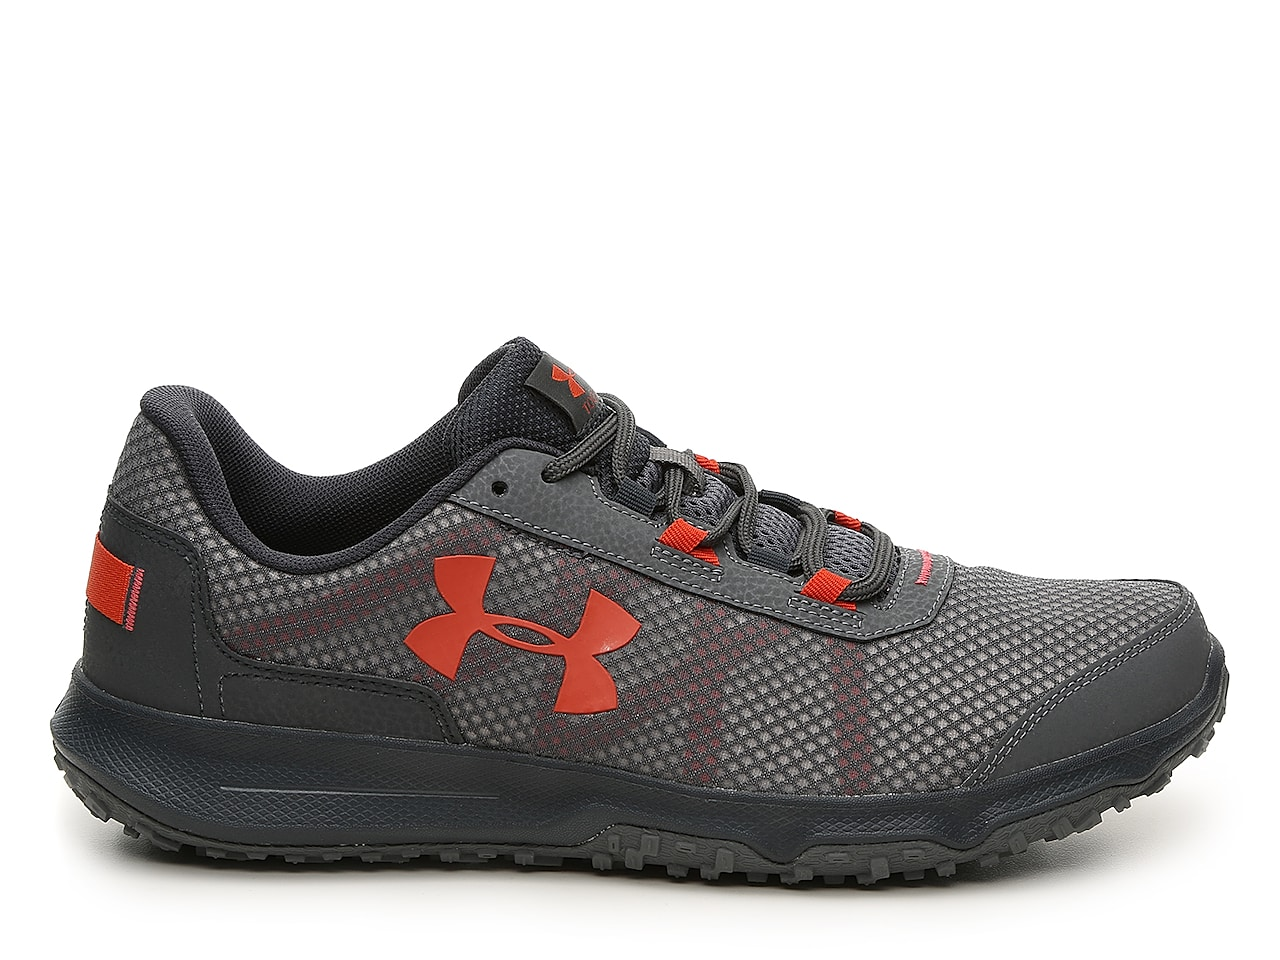 Under Armour Mens Toccoa Running Shoe